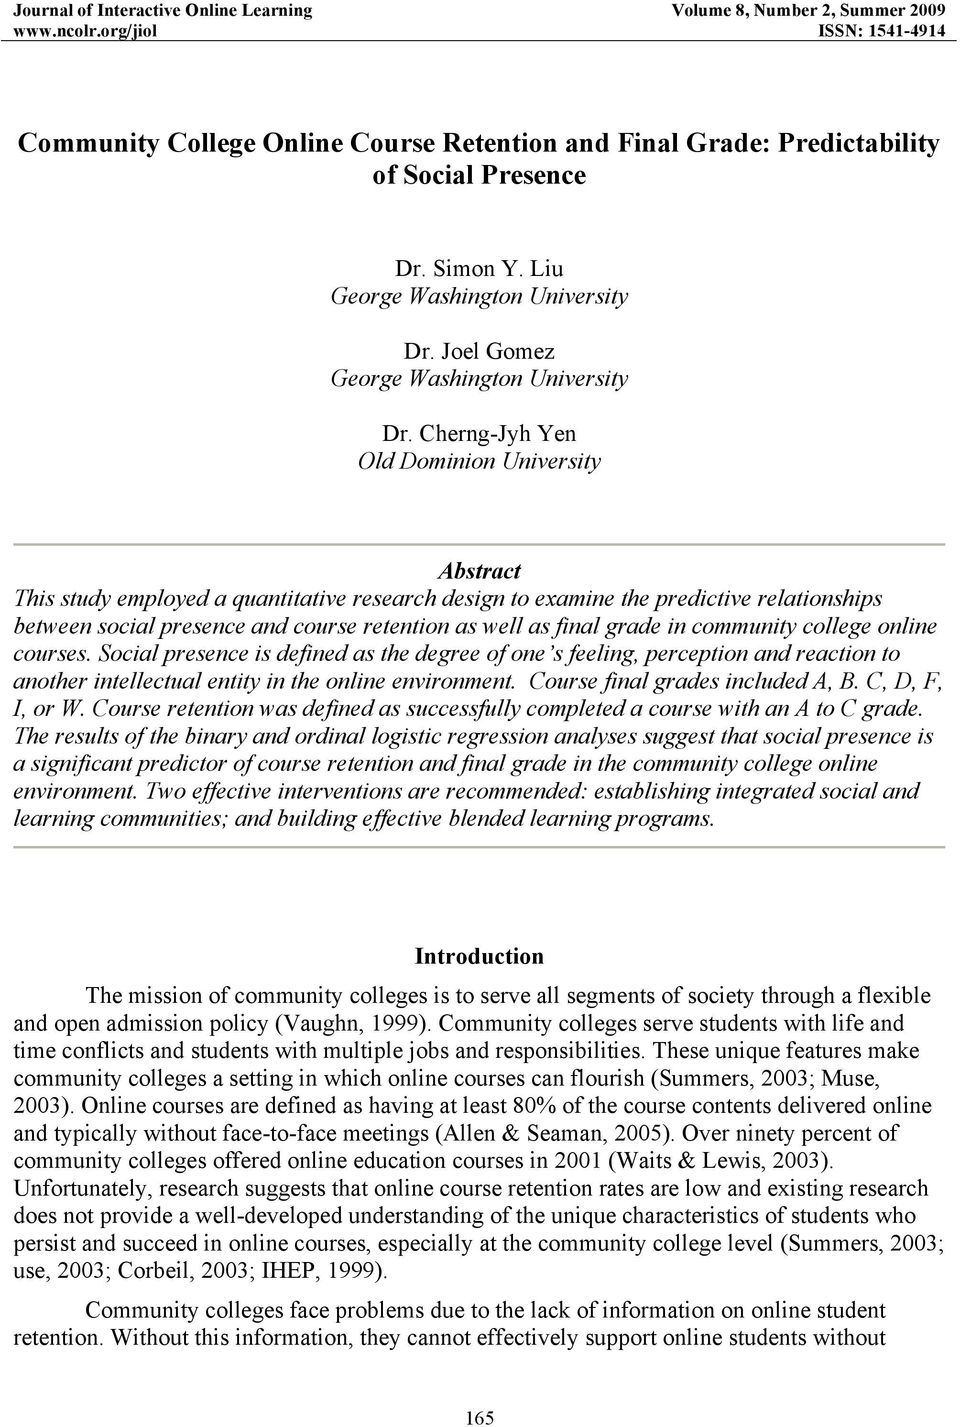 Cherng-Jyh Yen Old Dominion University Abstract This study employed a quantitative research design to examine the predictive relationships between social presence and course retention as well as